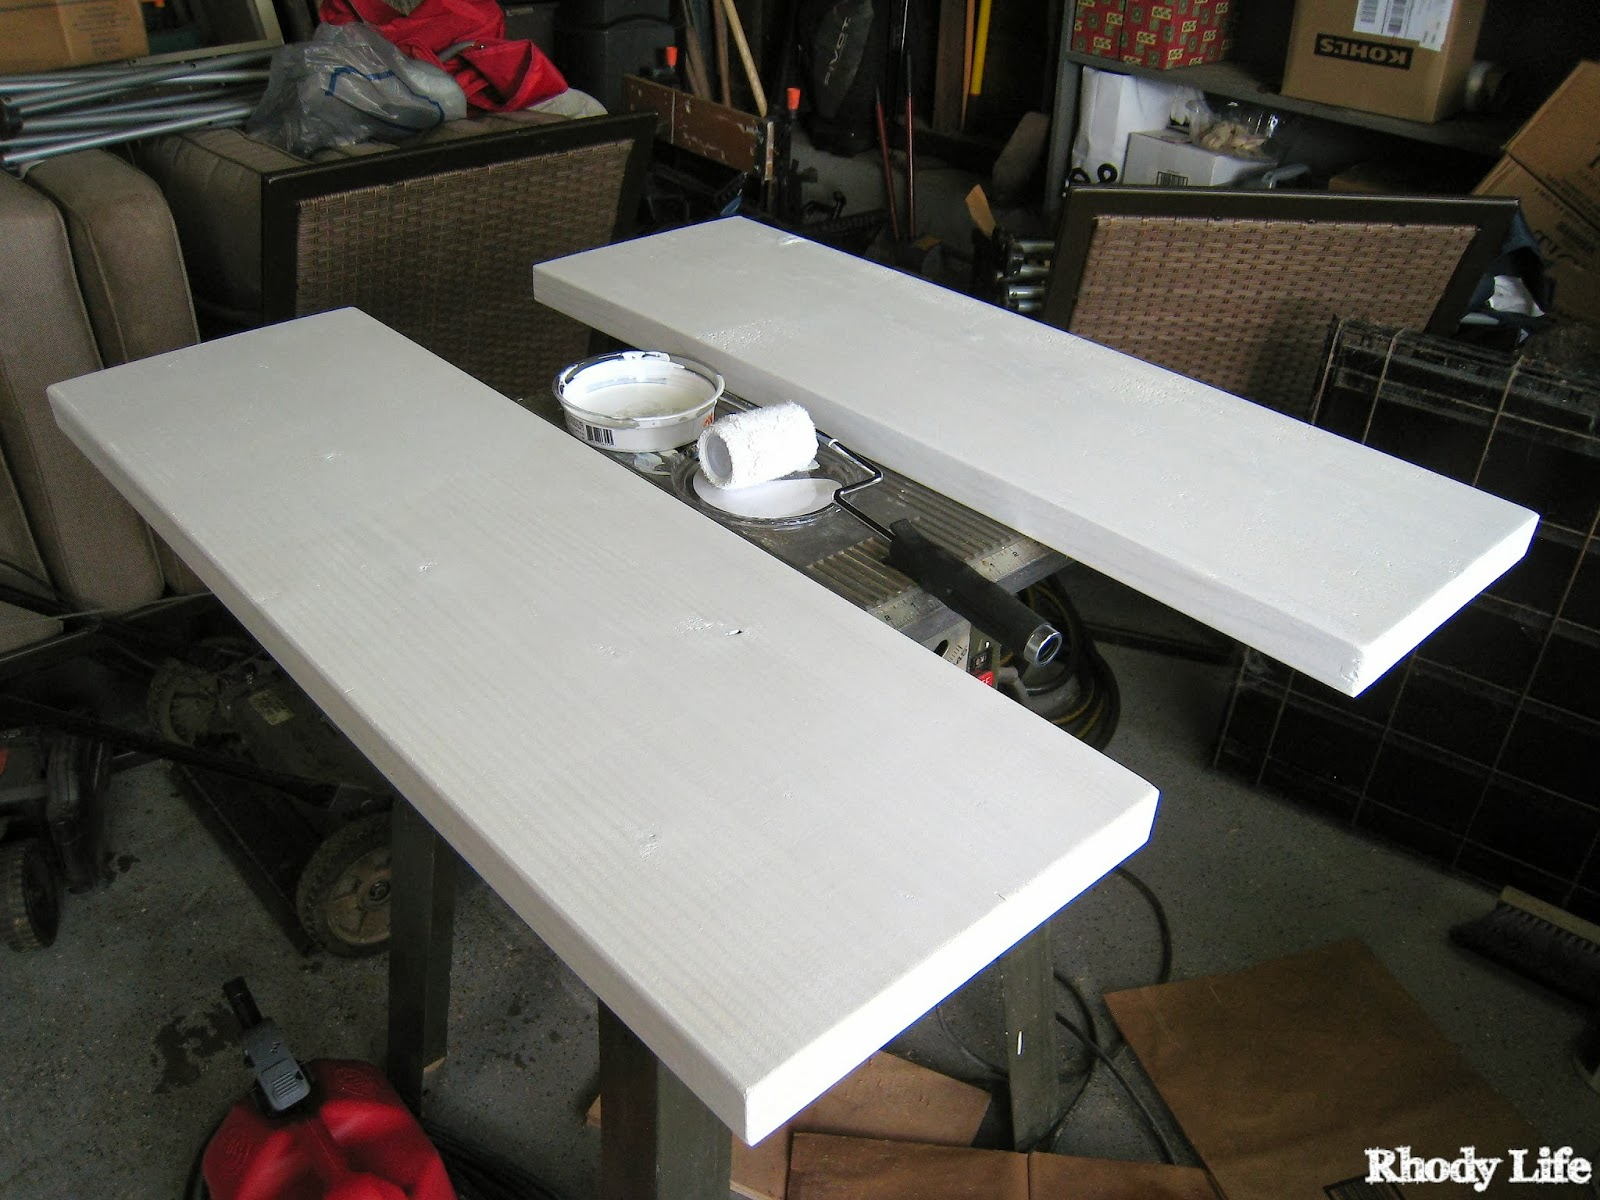 Diy overbed table - Once The Paint Dries You Are Ready To Add An Optional Protective Coat Onto The Boards I Decided To Use A Spray Polyurethane To Protect The Paint On The